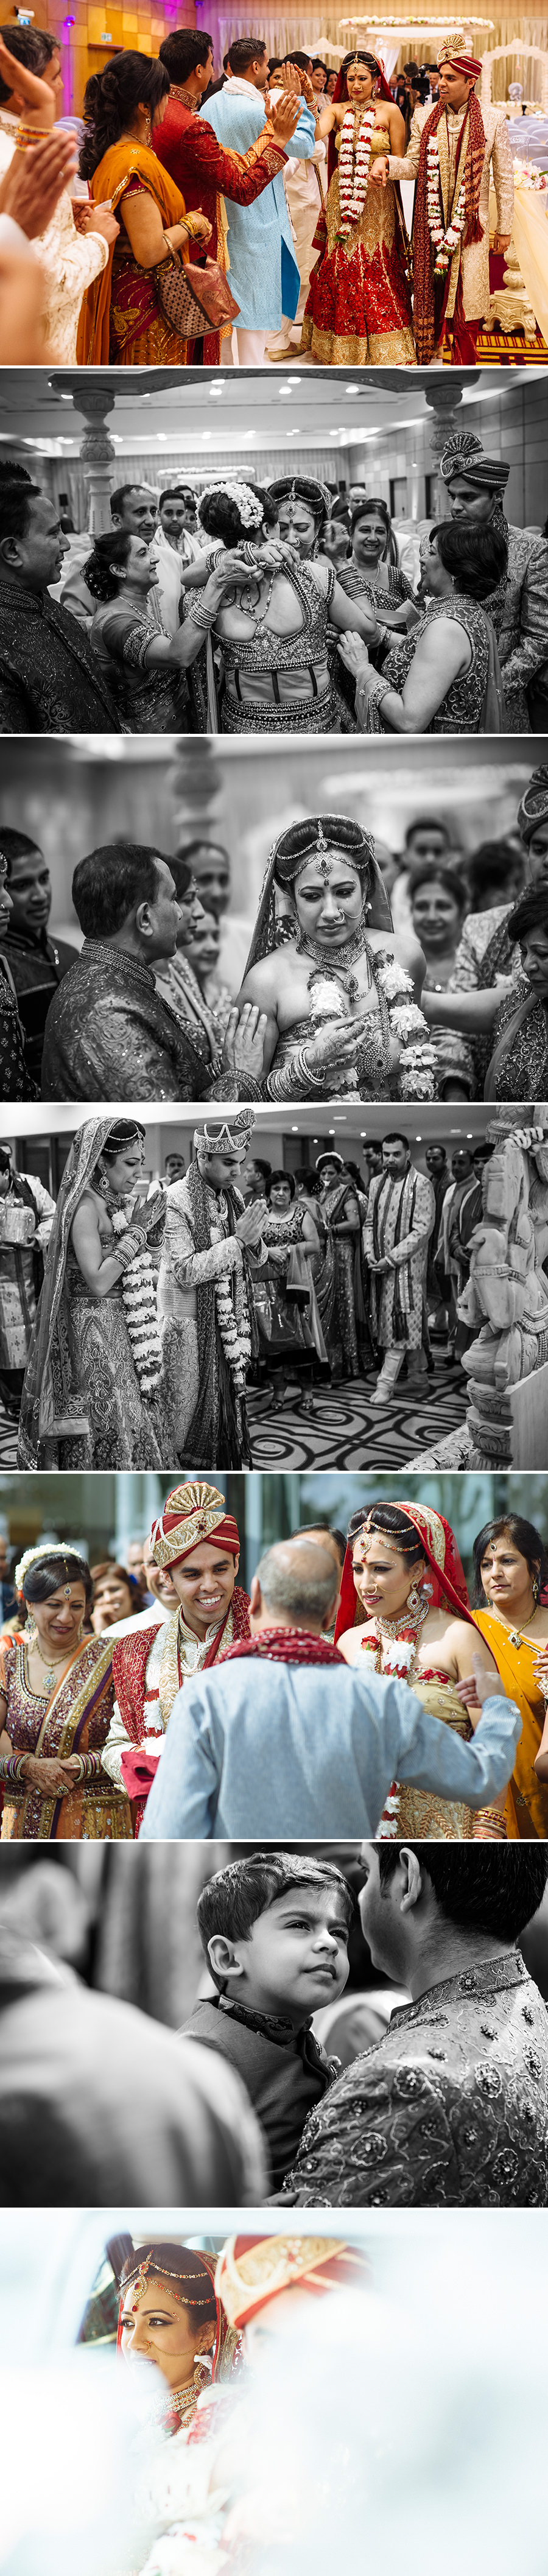 08_destination_indian_wedding_marriott wedding_top wedding photography_alternative wedding ceremony_08